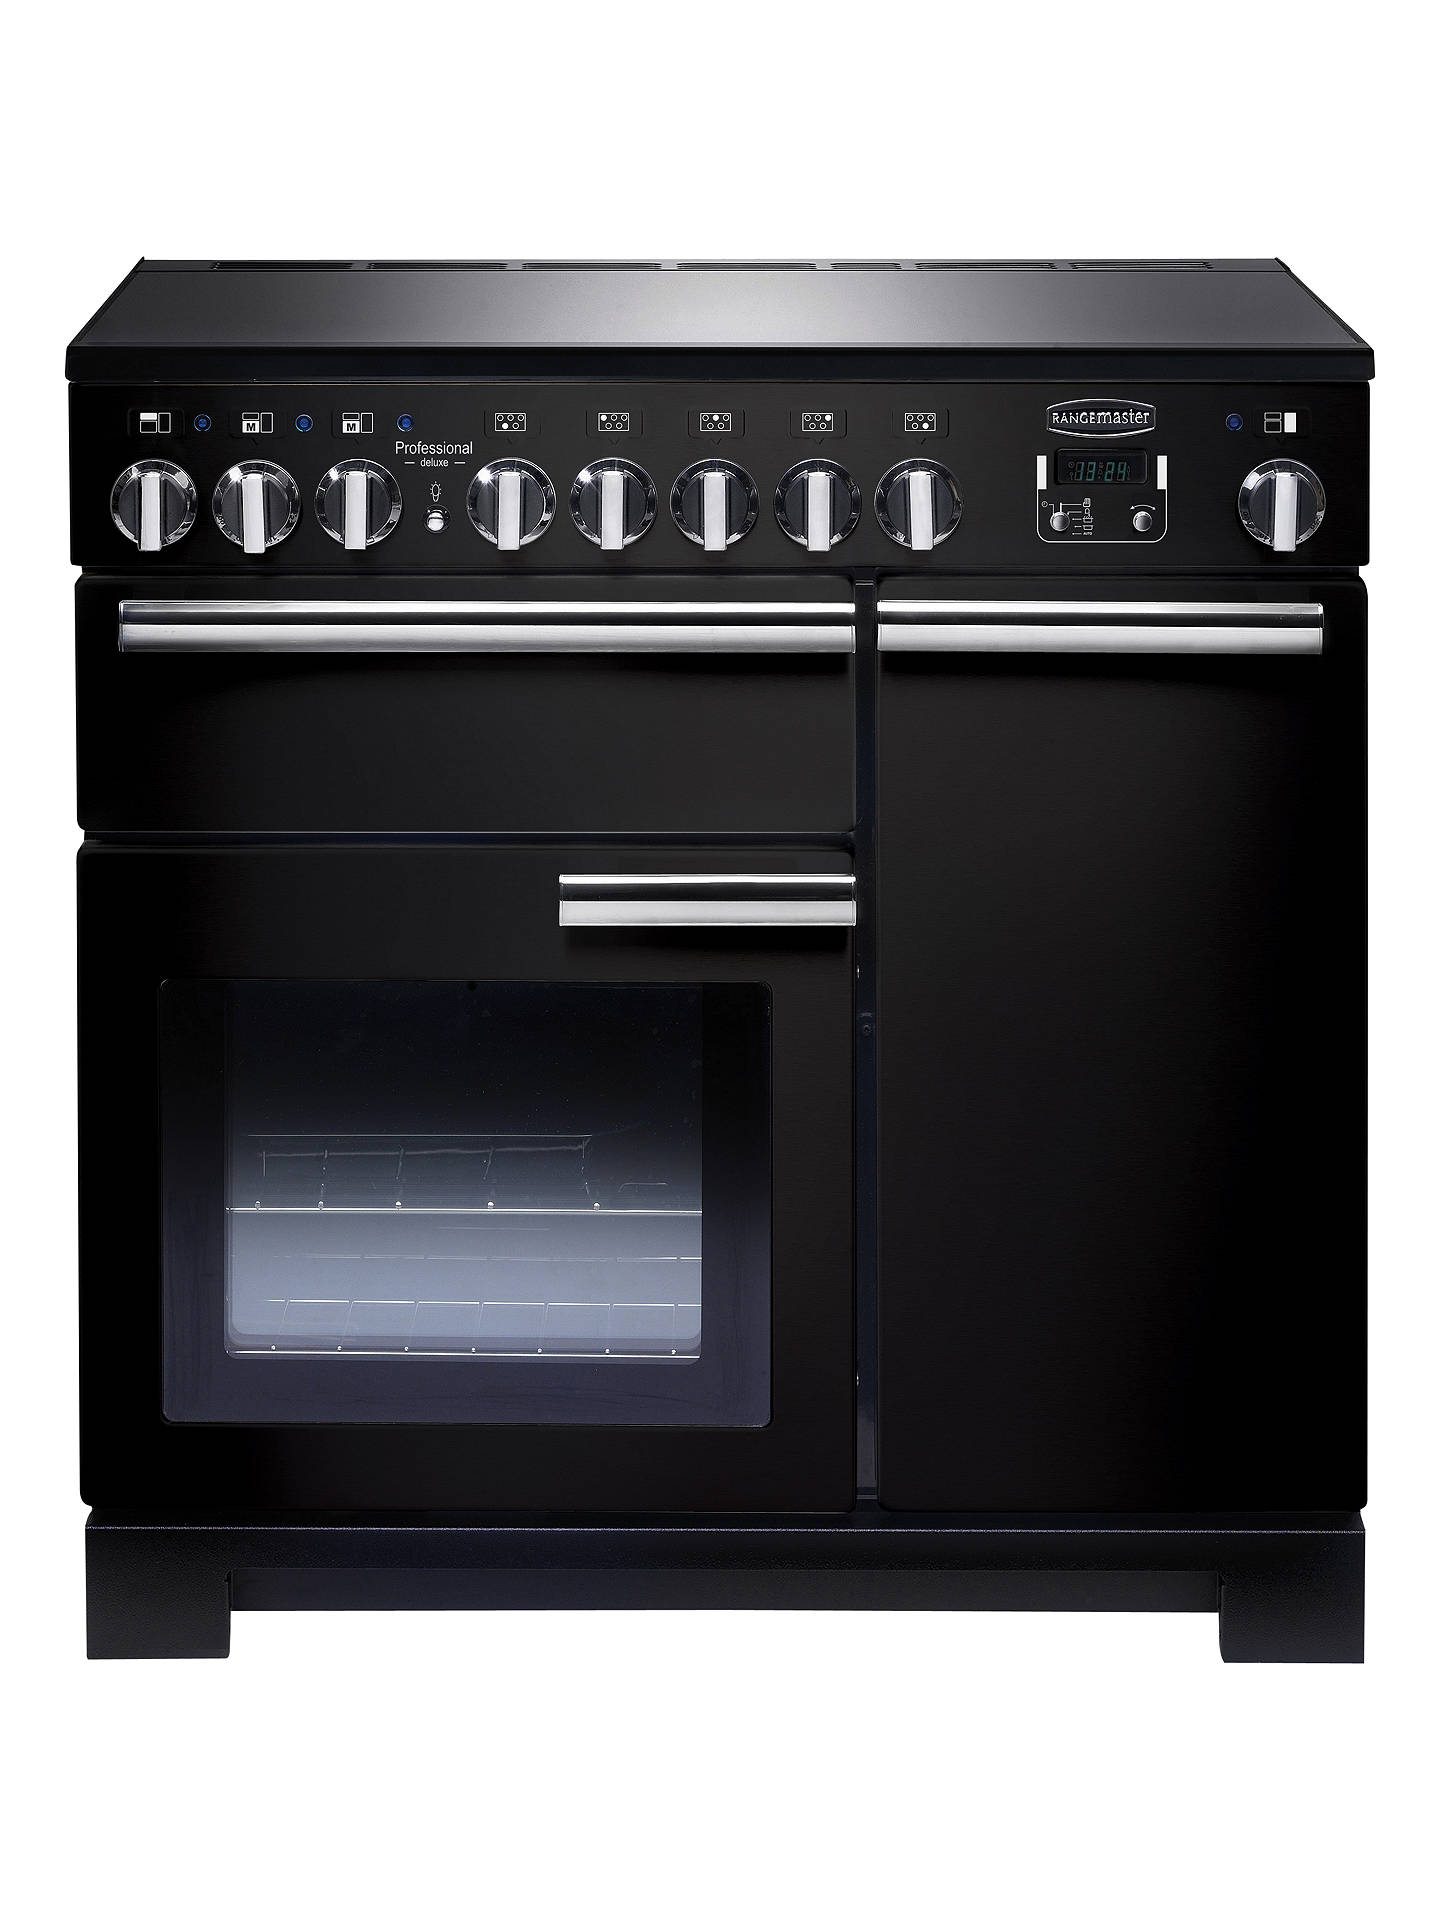 BuyRangemaster Professional Deluxe 90 Induction Hob Range Cooker, Black/Chrome Trim Online at johnlewis.com